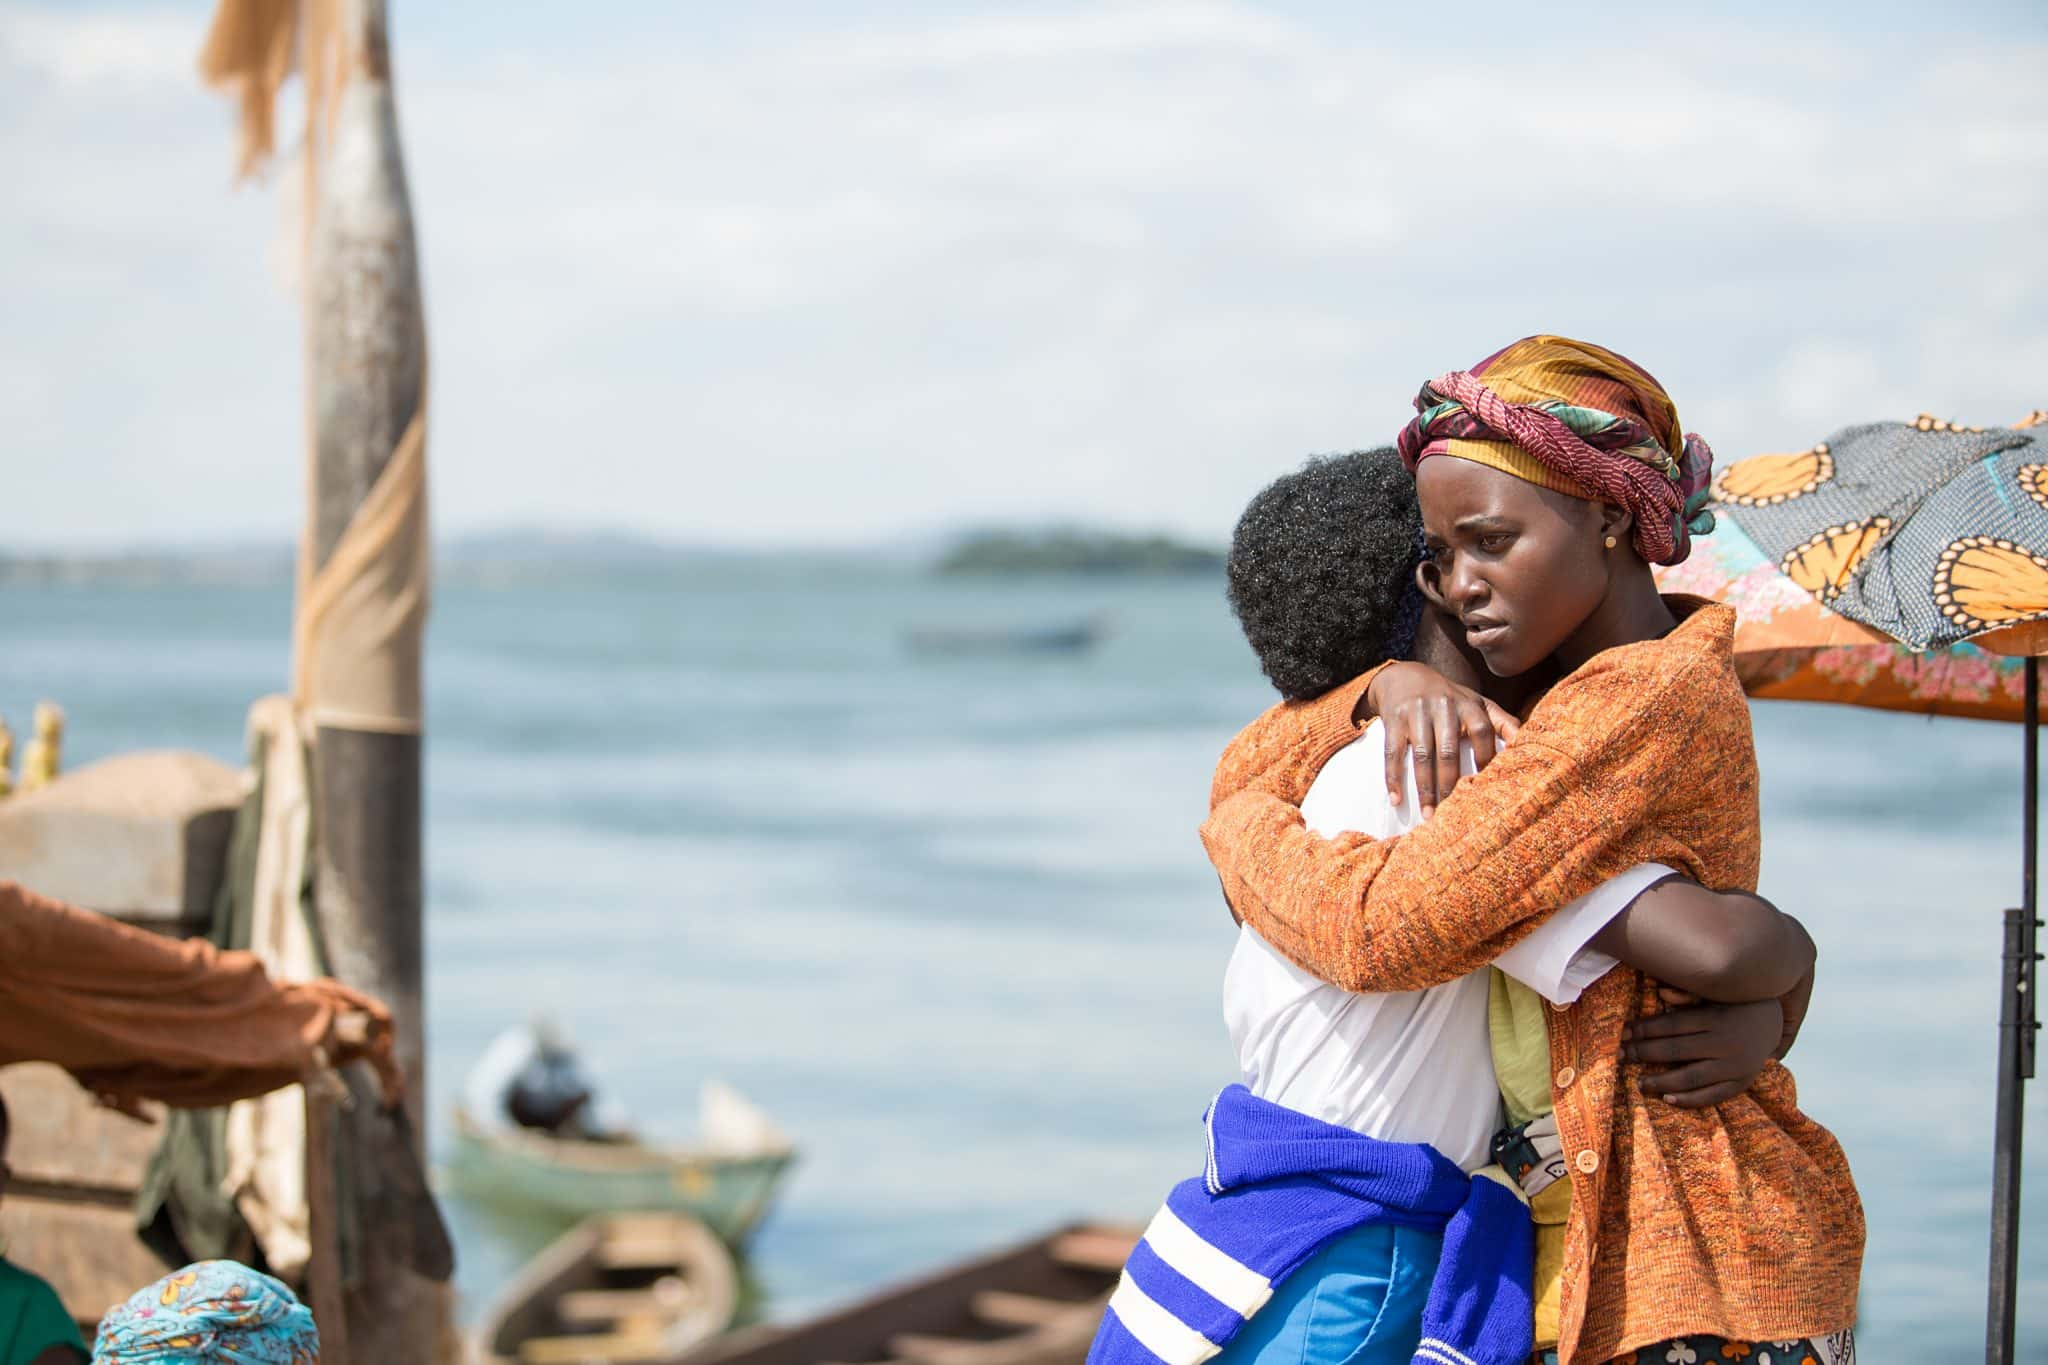 Disney's Queen of Katwe in theaters Sept 23 | ThisNThatwithOlivia.com